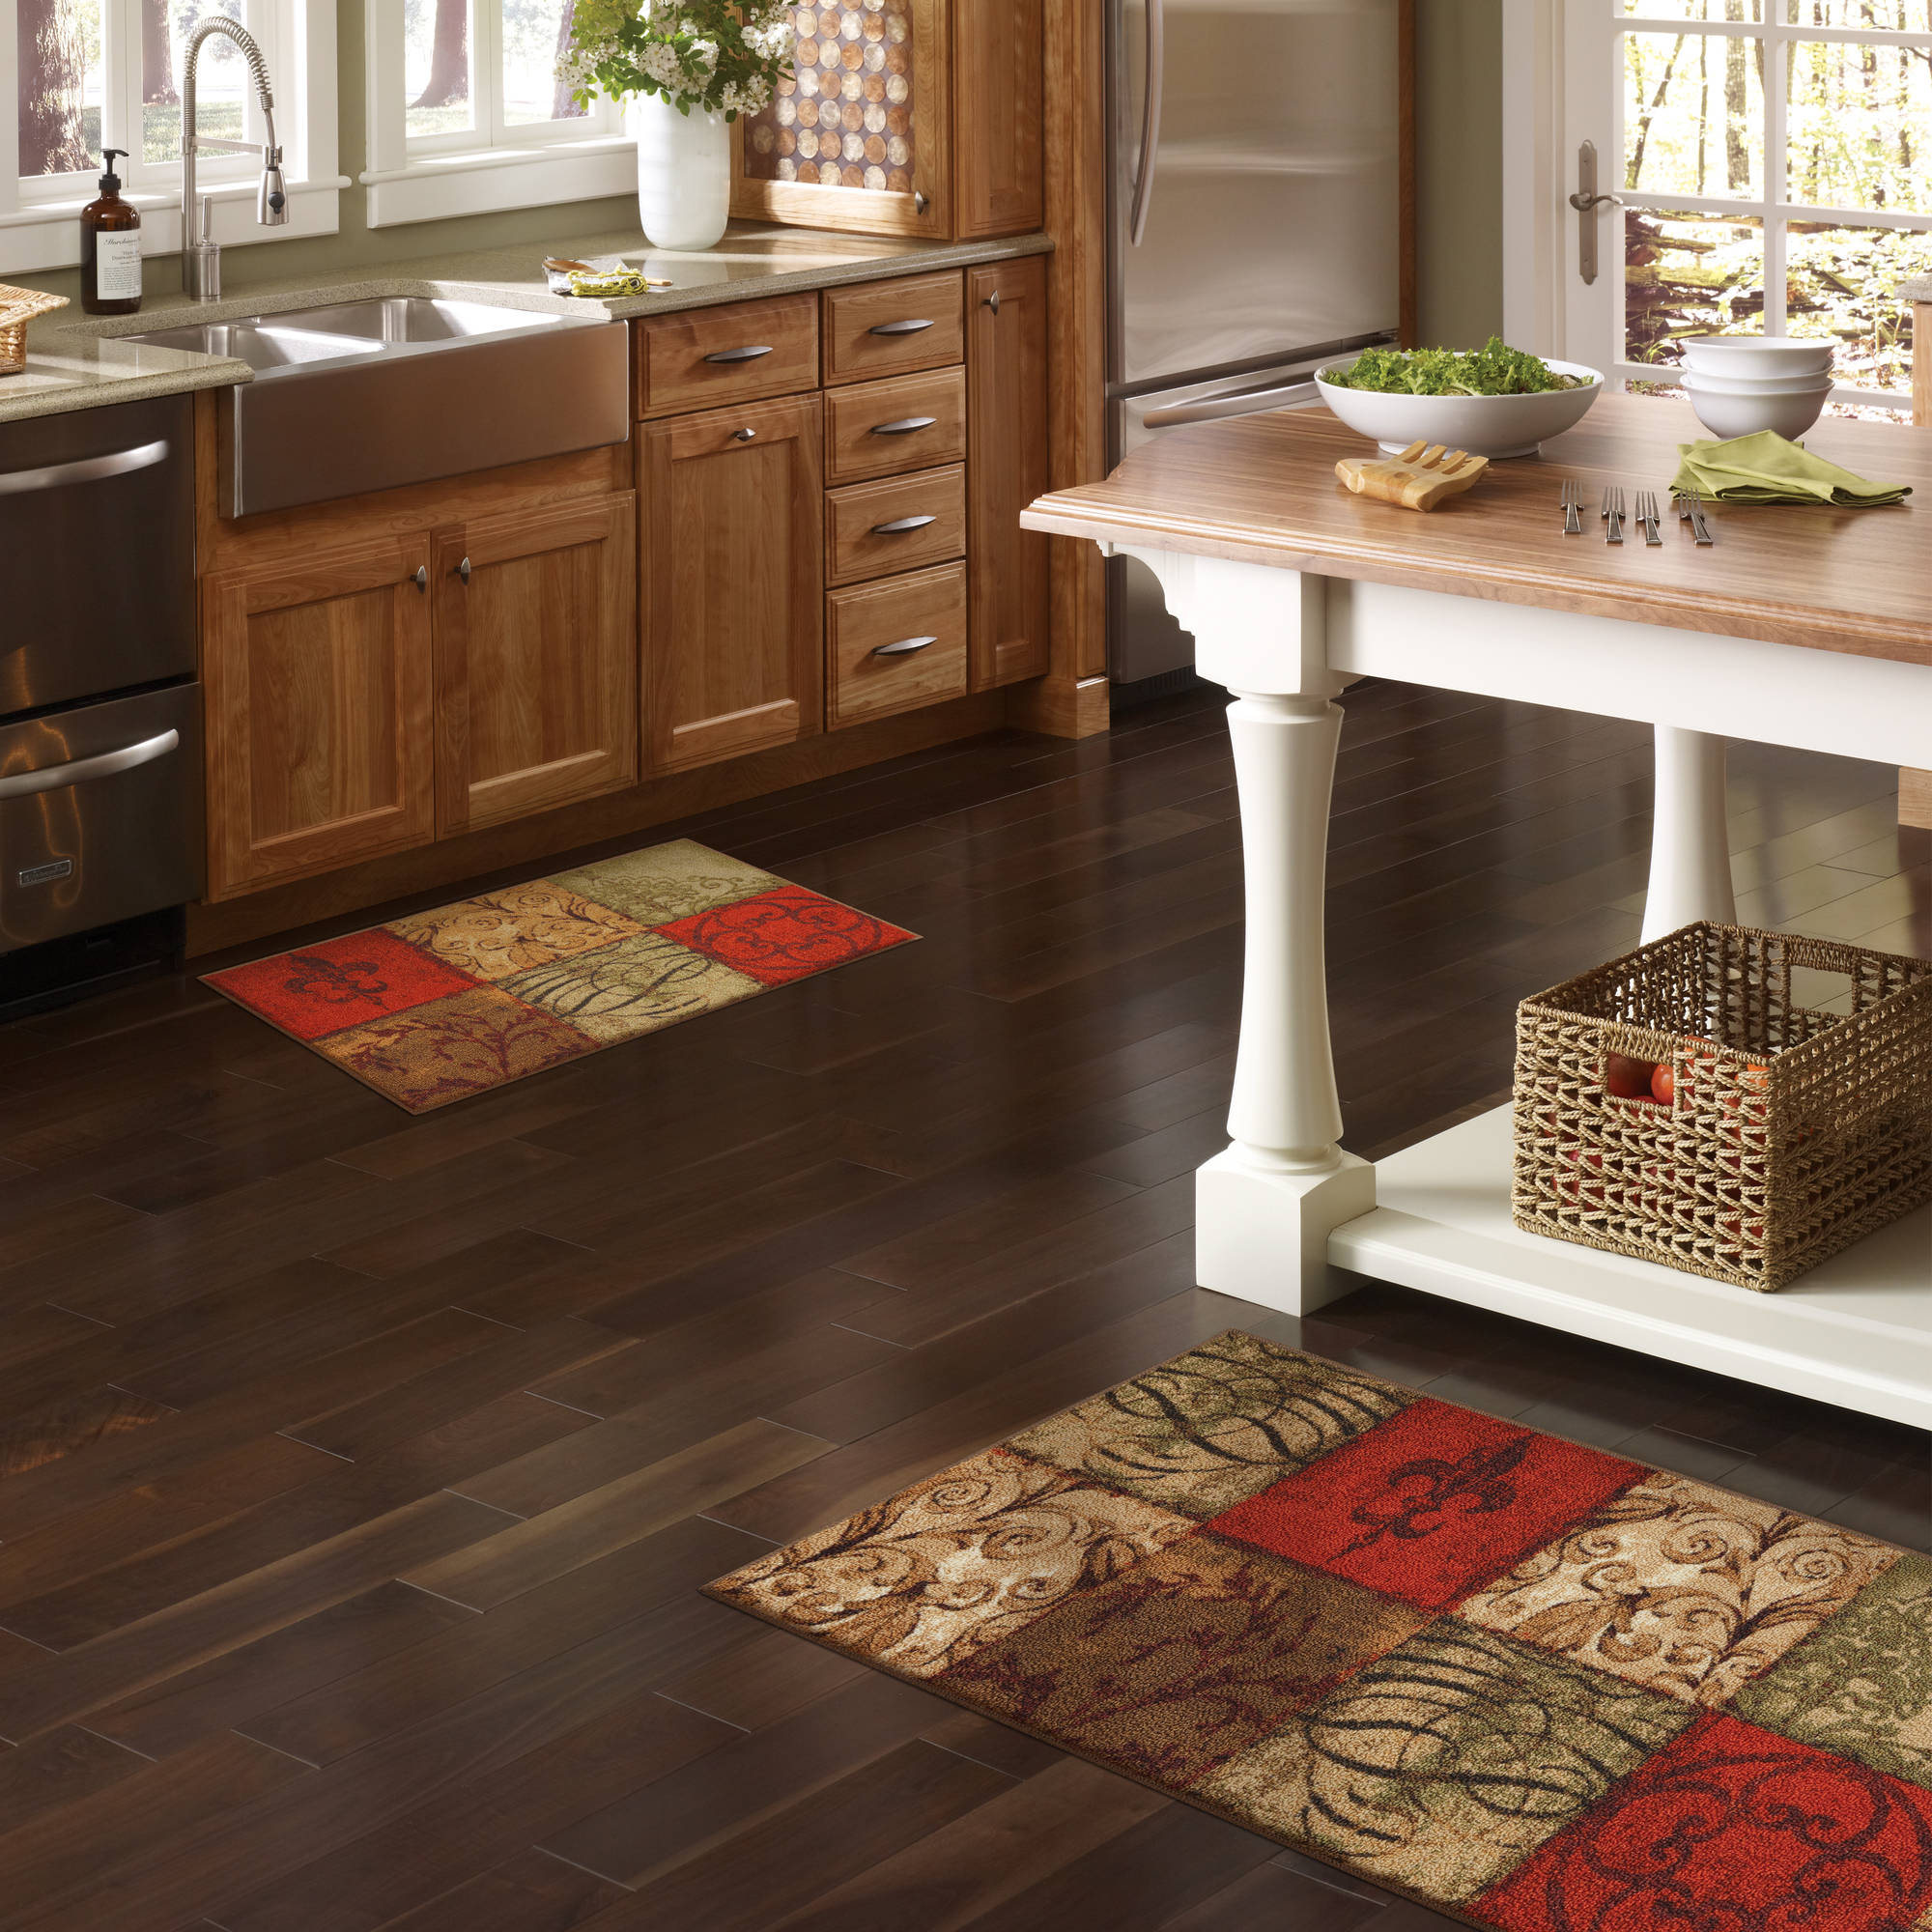 Significance of kitchen rugs